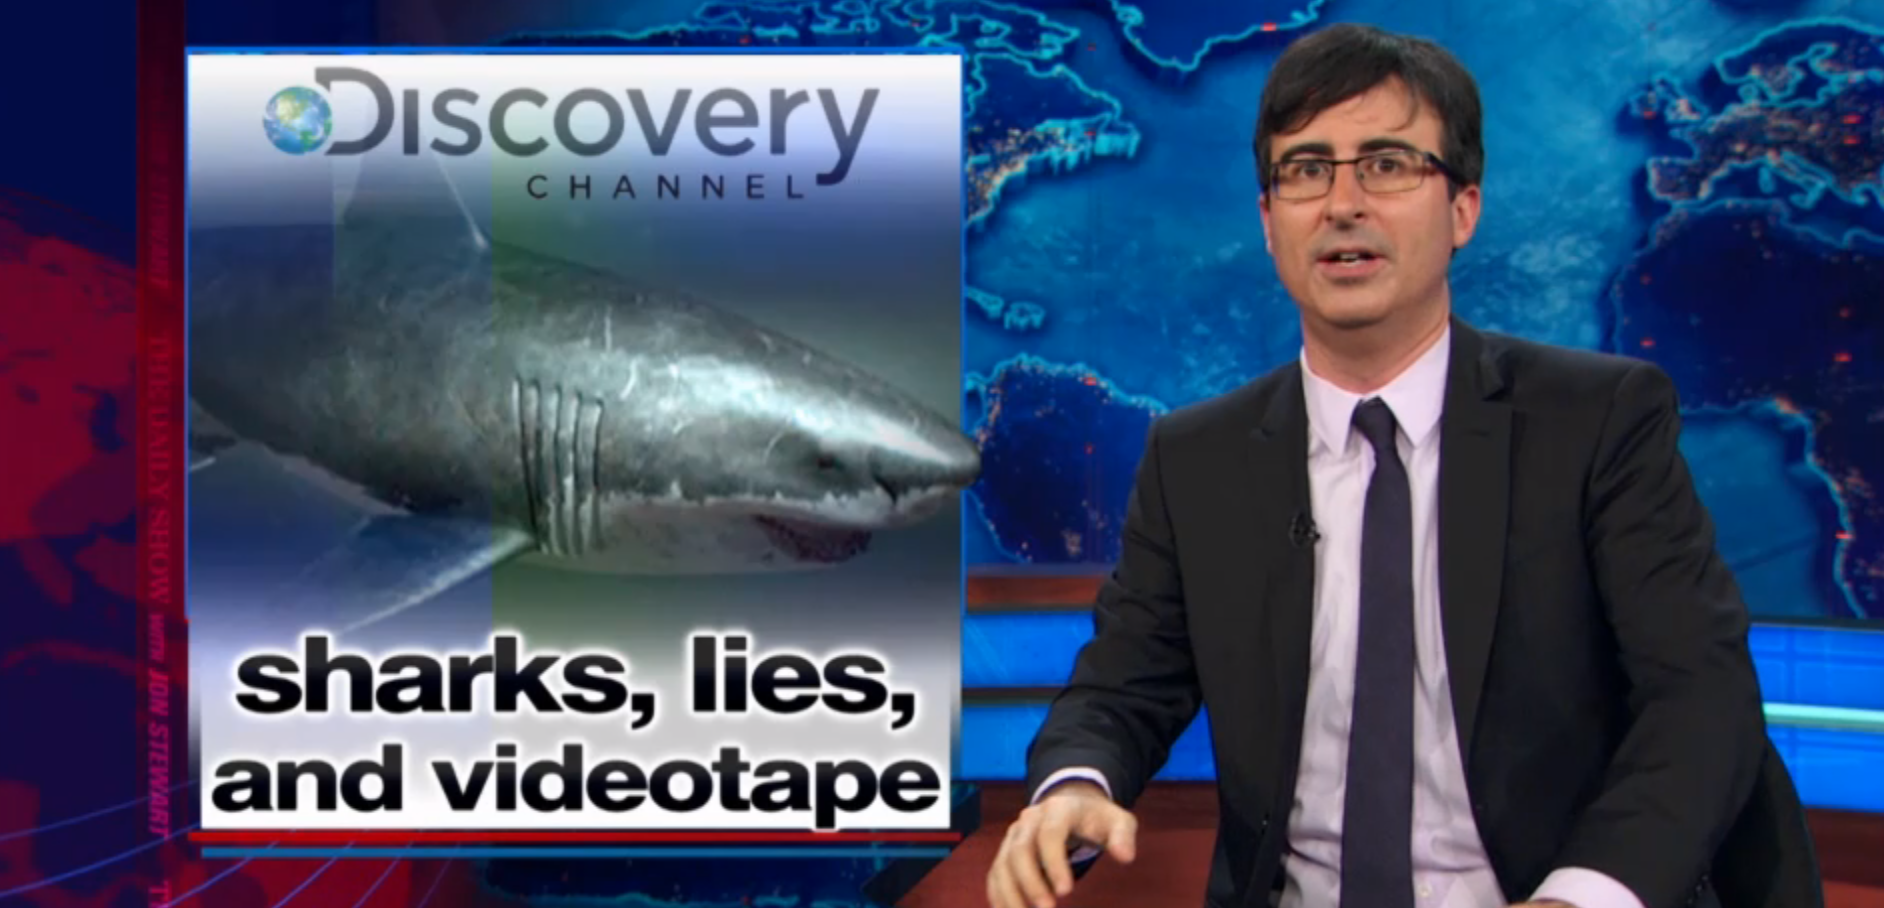 Comedian and host of Last Week Tonight, John Oliver weighs in on misleading shark programming.